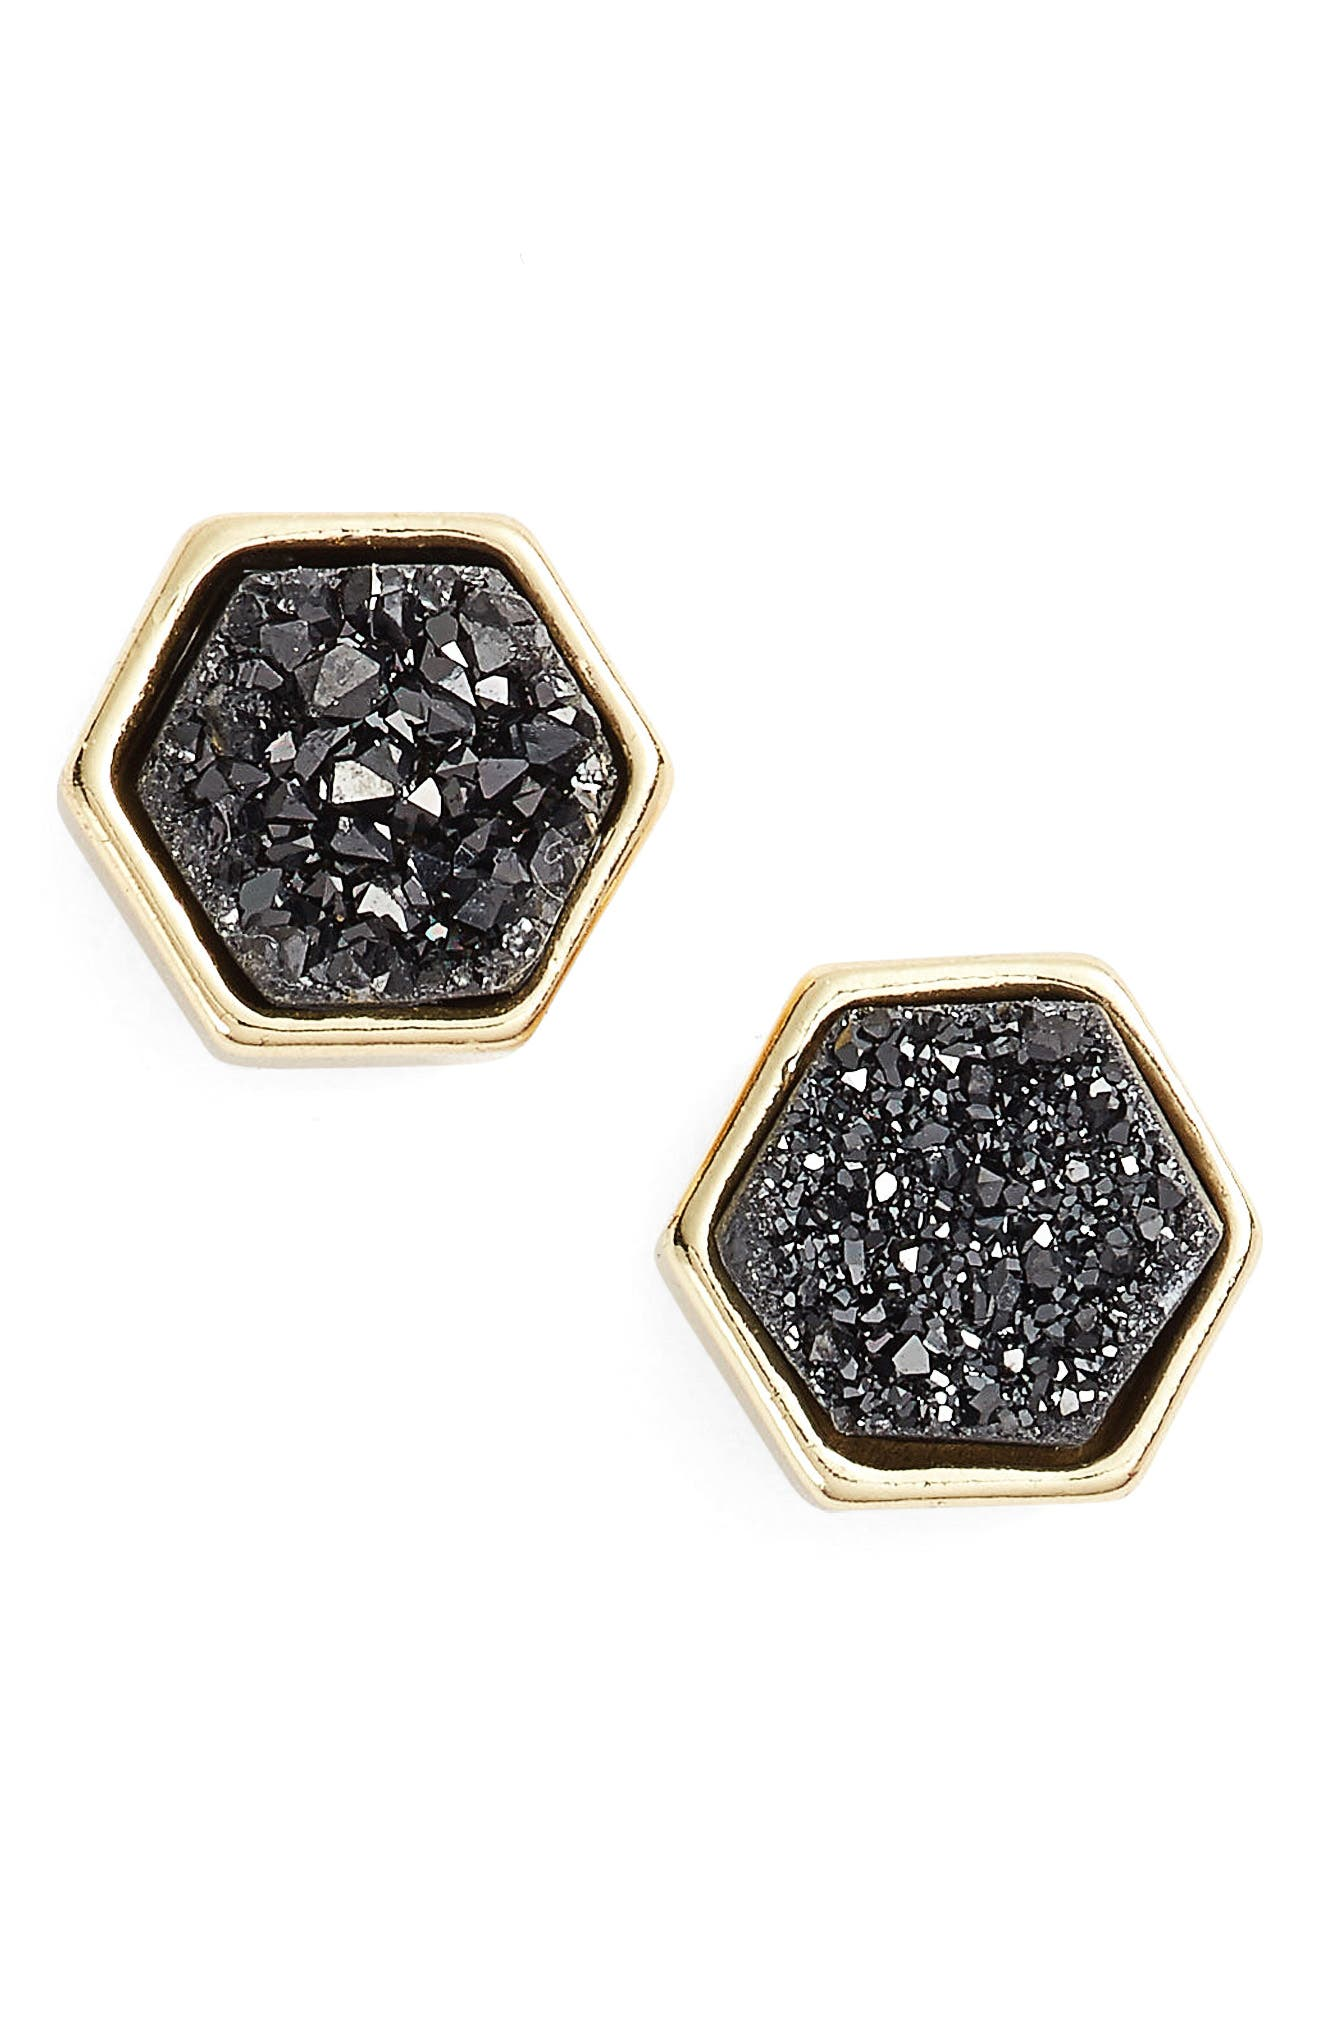 TEMPESTE HEX STUD EARRINGS